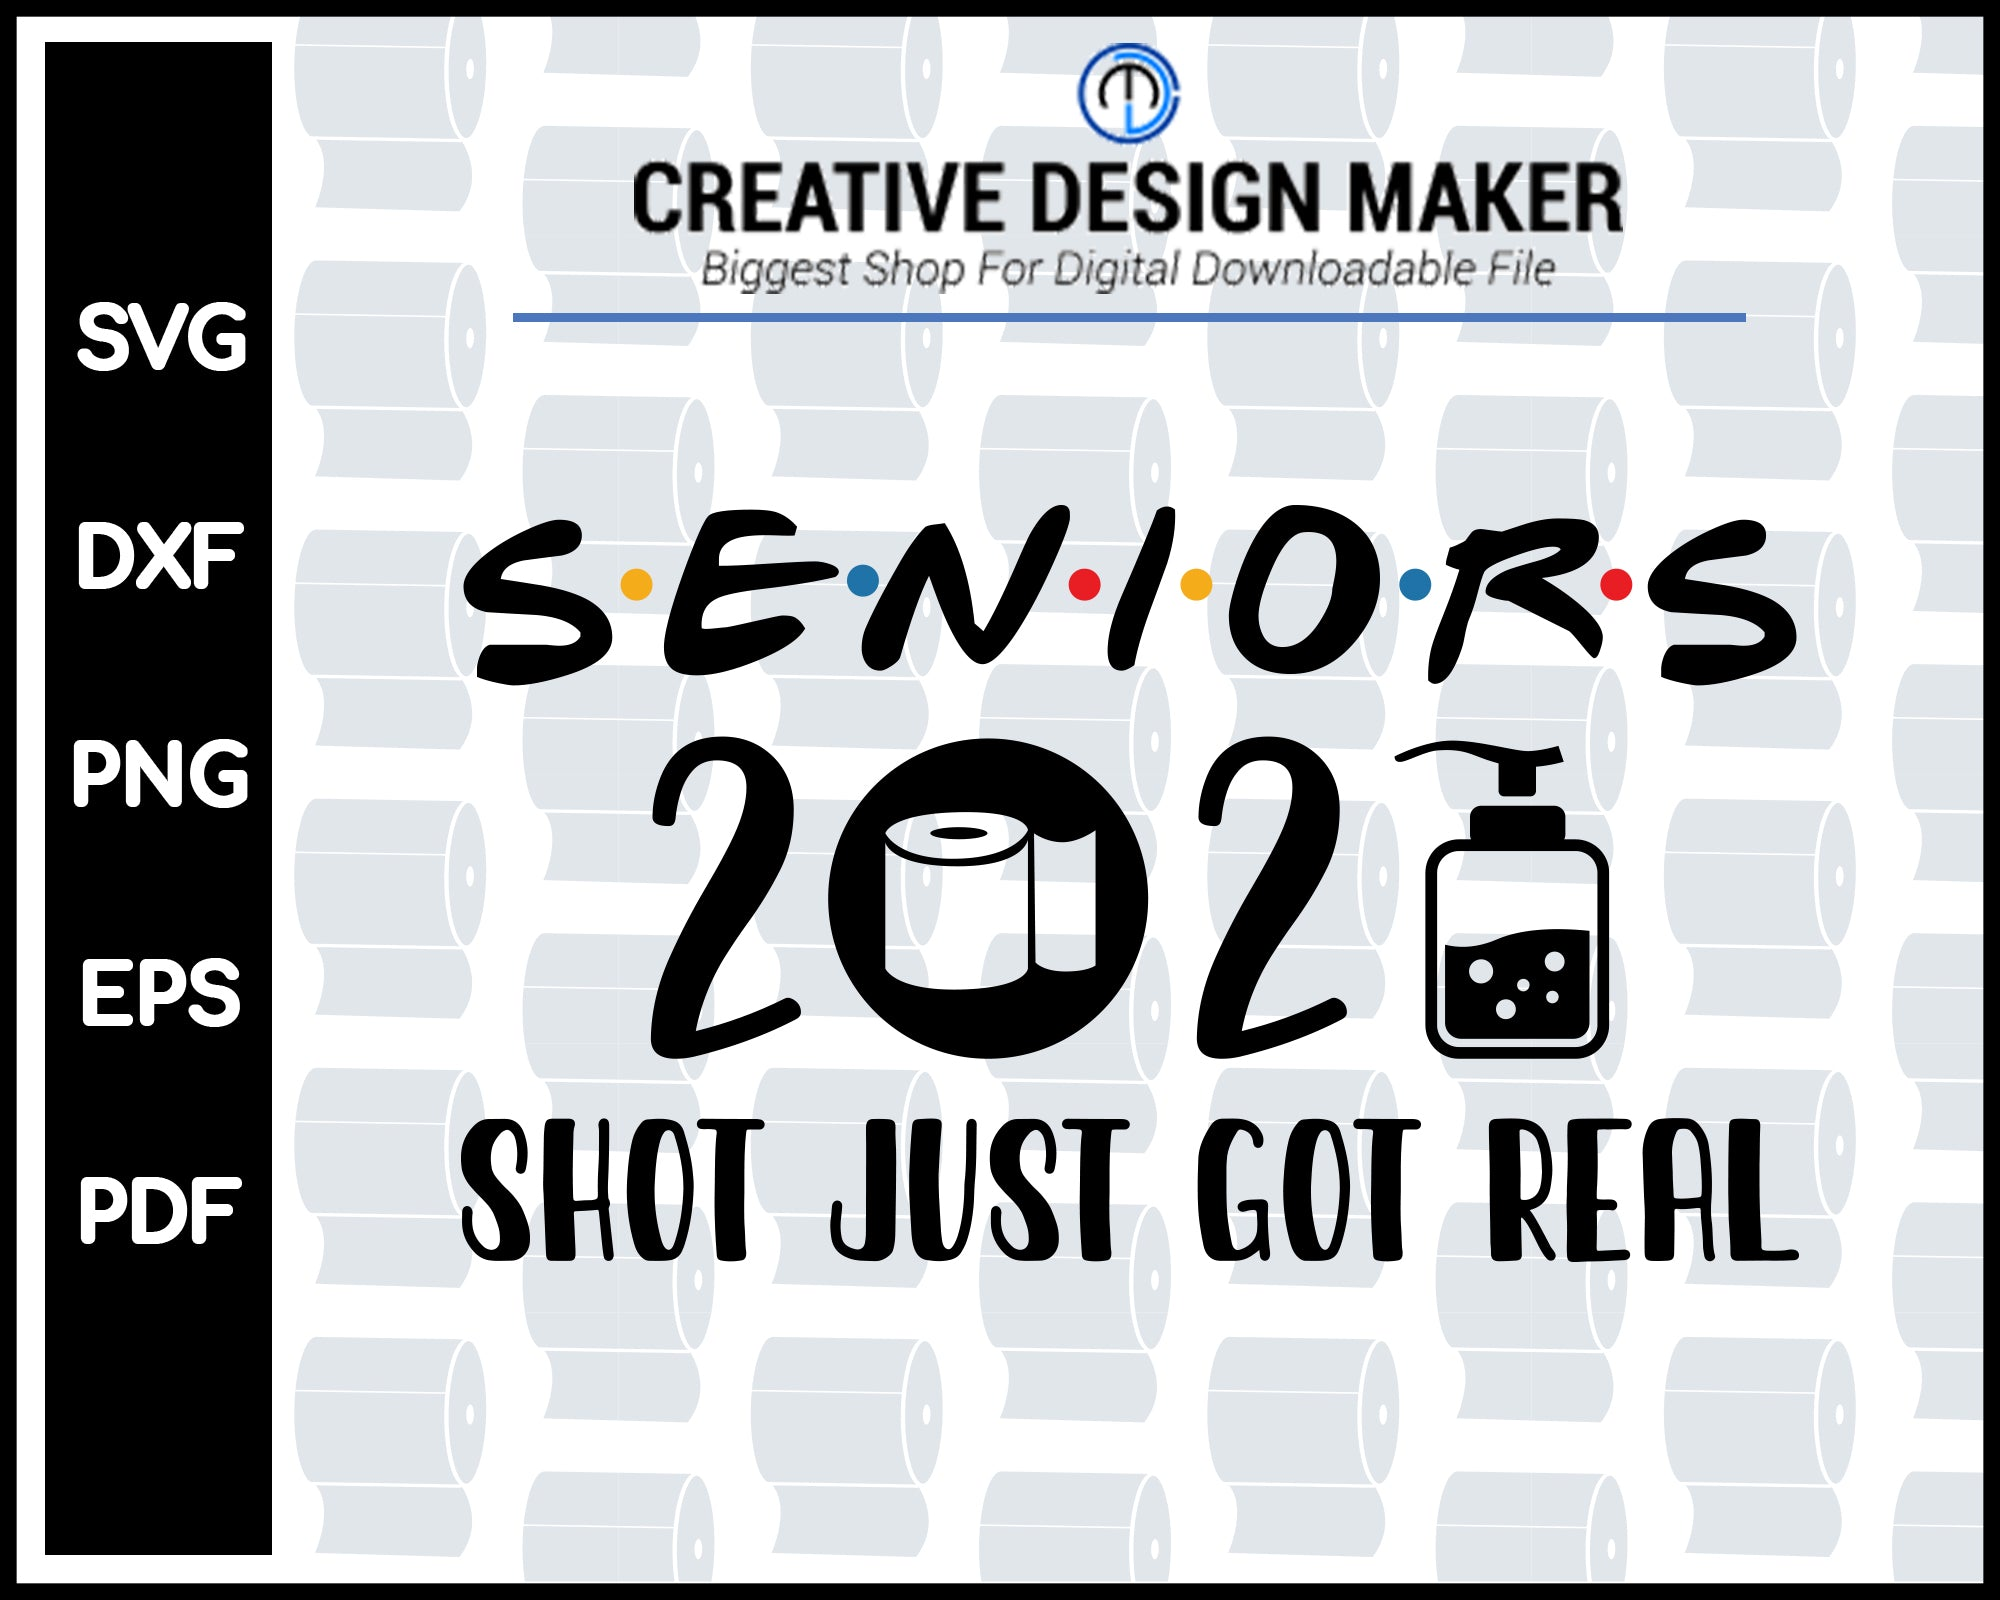 Seniors 2020 Shot Just Got Real svg For Cricut Silhouette And eps png Printable Files